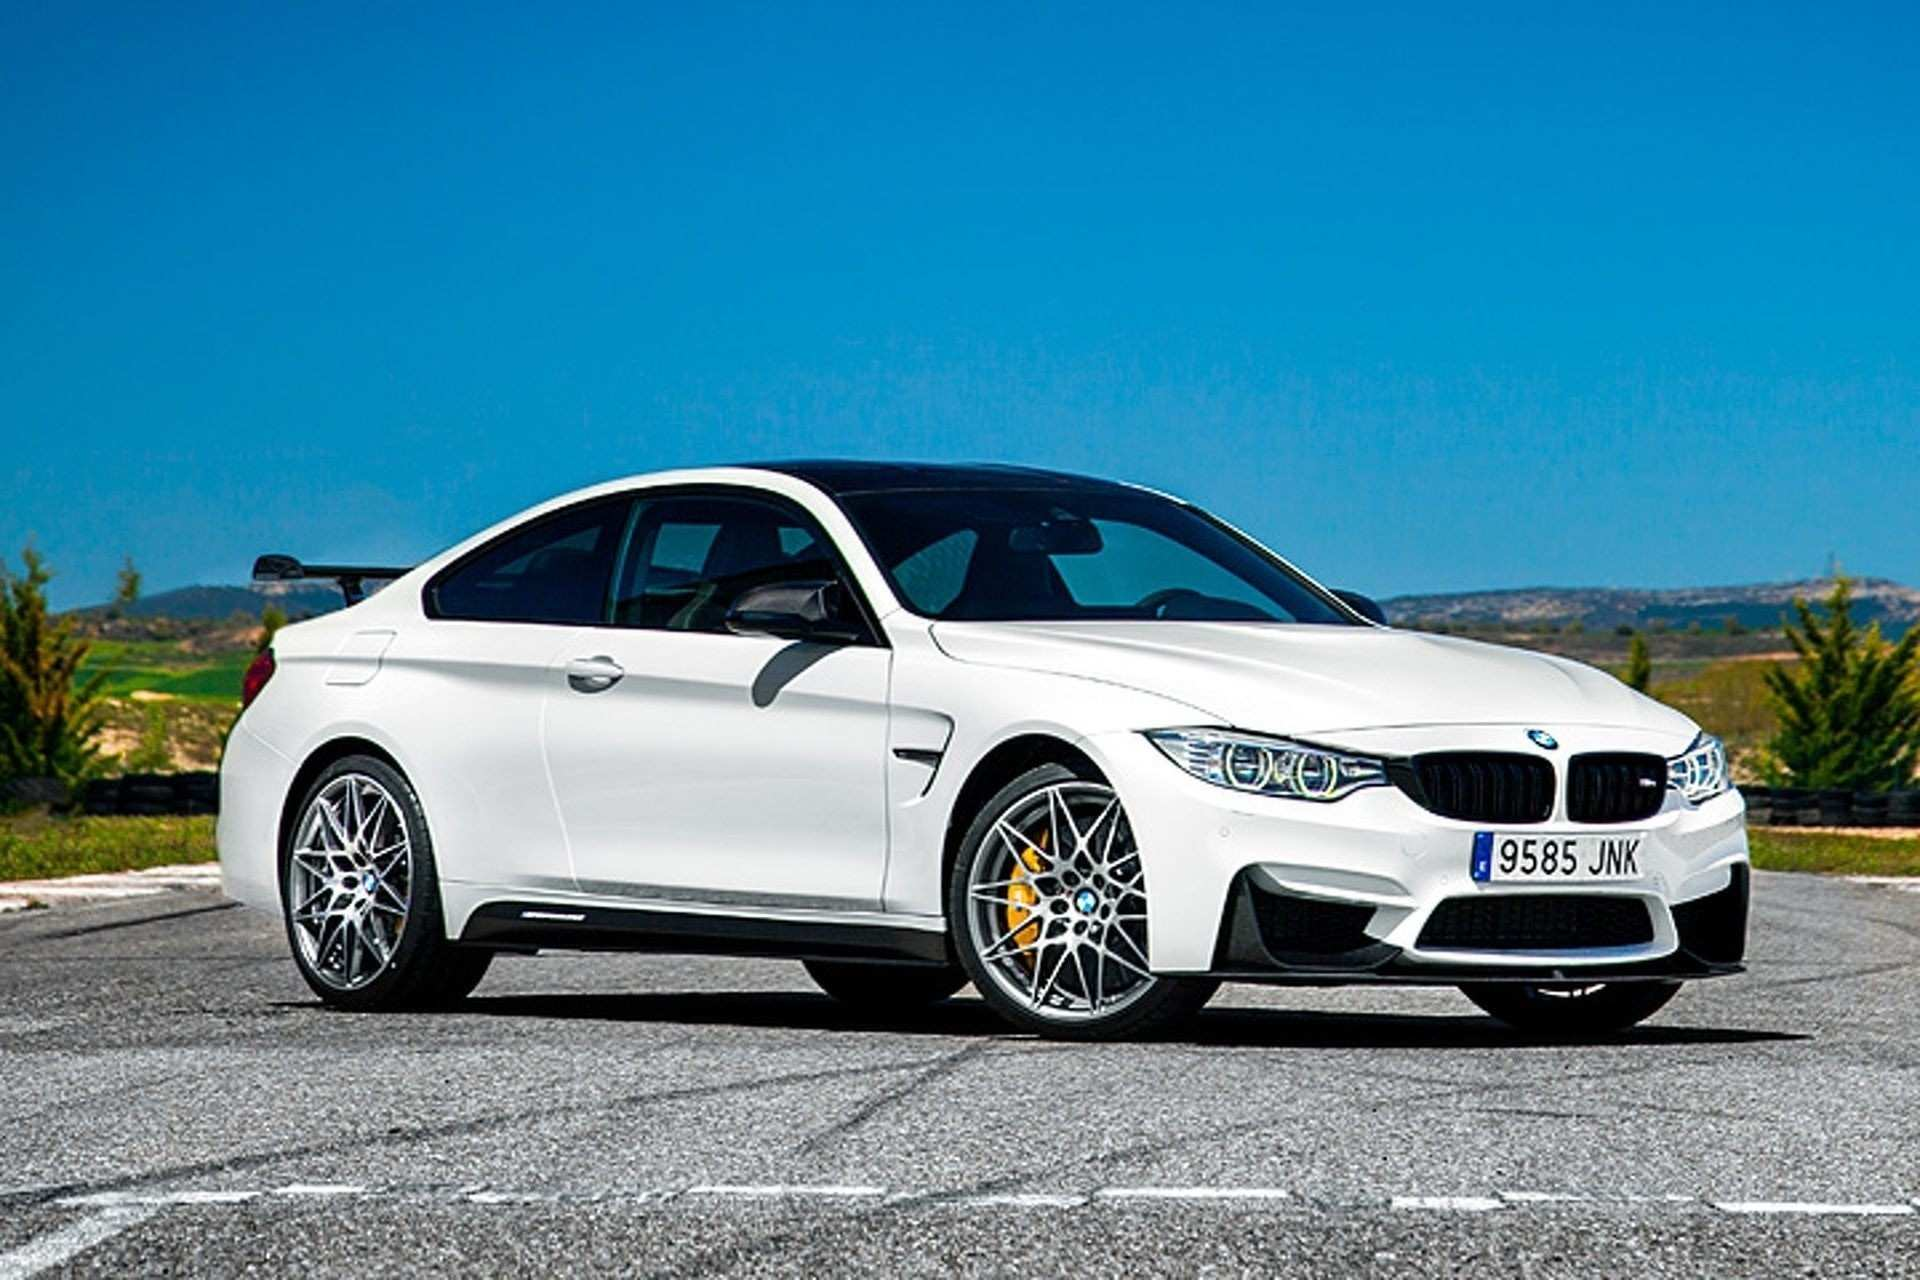 64 New 2019 BMW M4 Colors Price Design And Review